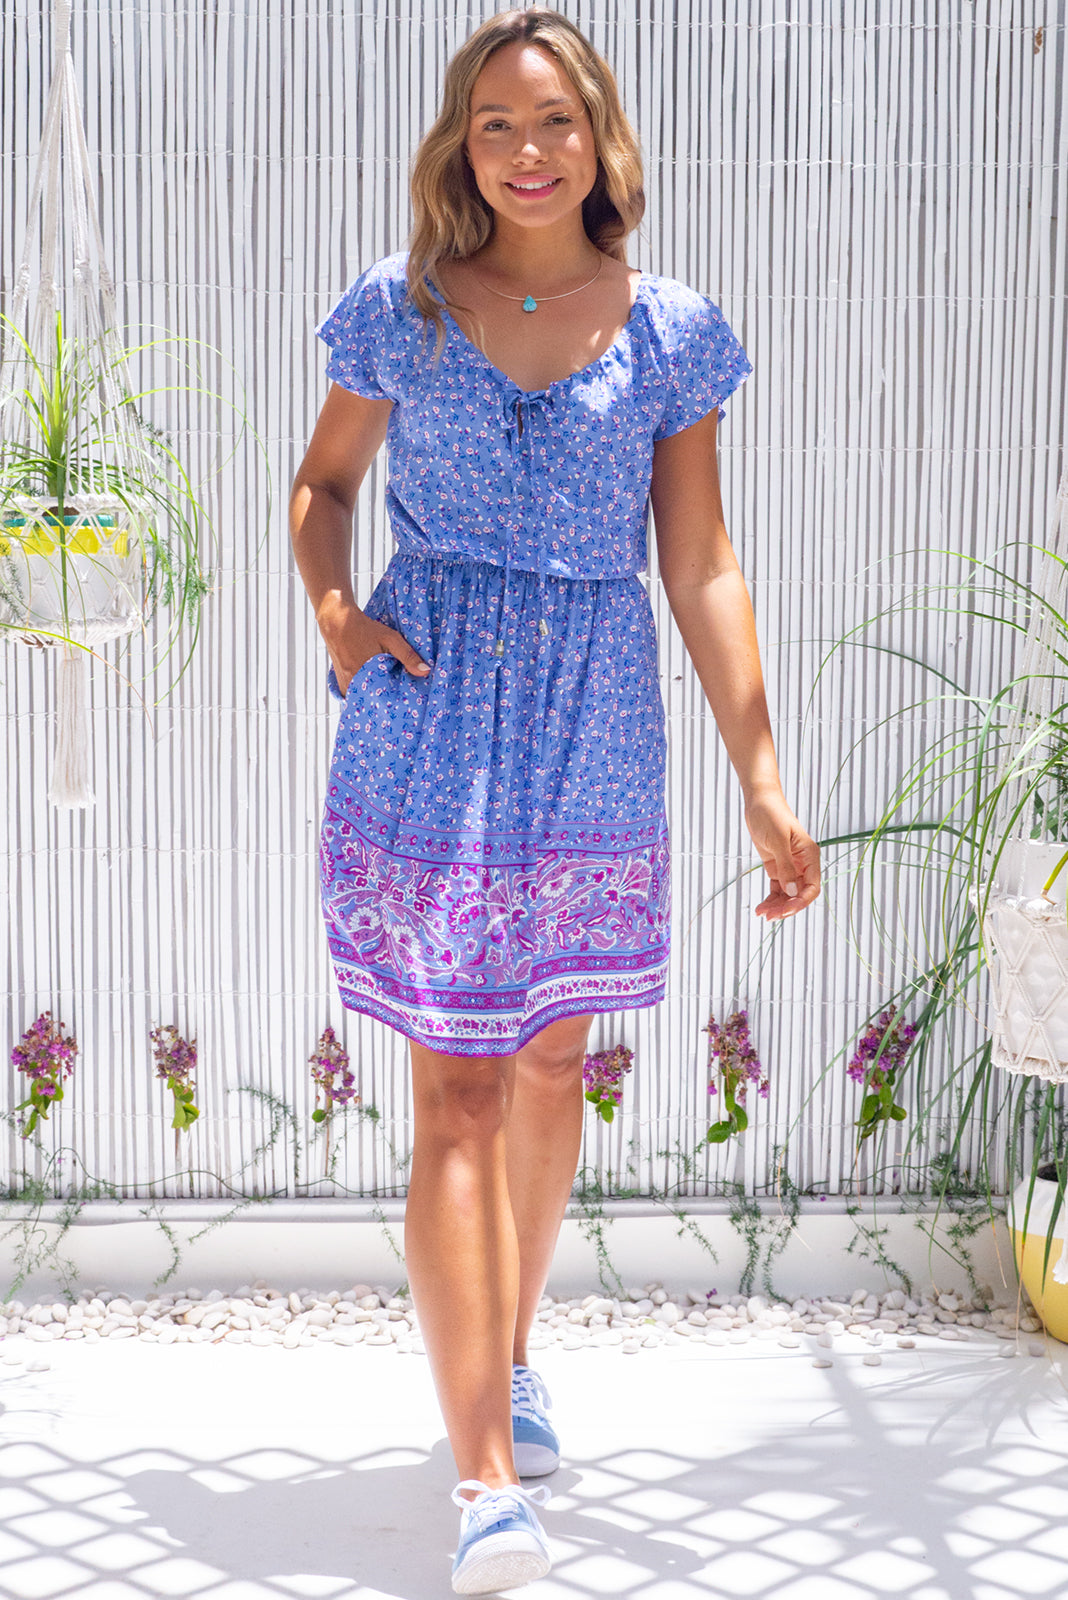 The Ace Maya blue Dress will become your favourite day dress featuring adjustable neckline with ties, cap sleeves, elasticated waist, side pockets and 100% rayon in soft, purply blue base with small floral accents and border feature.